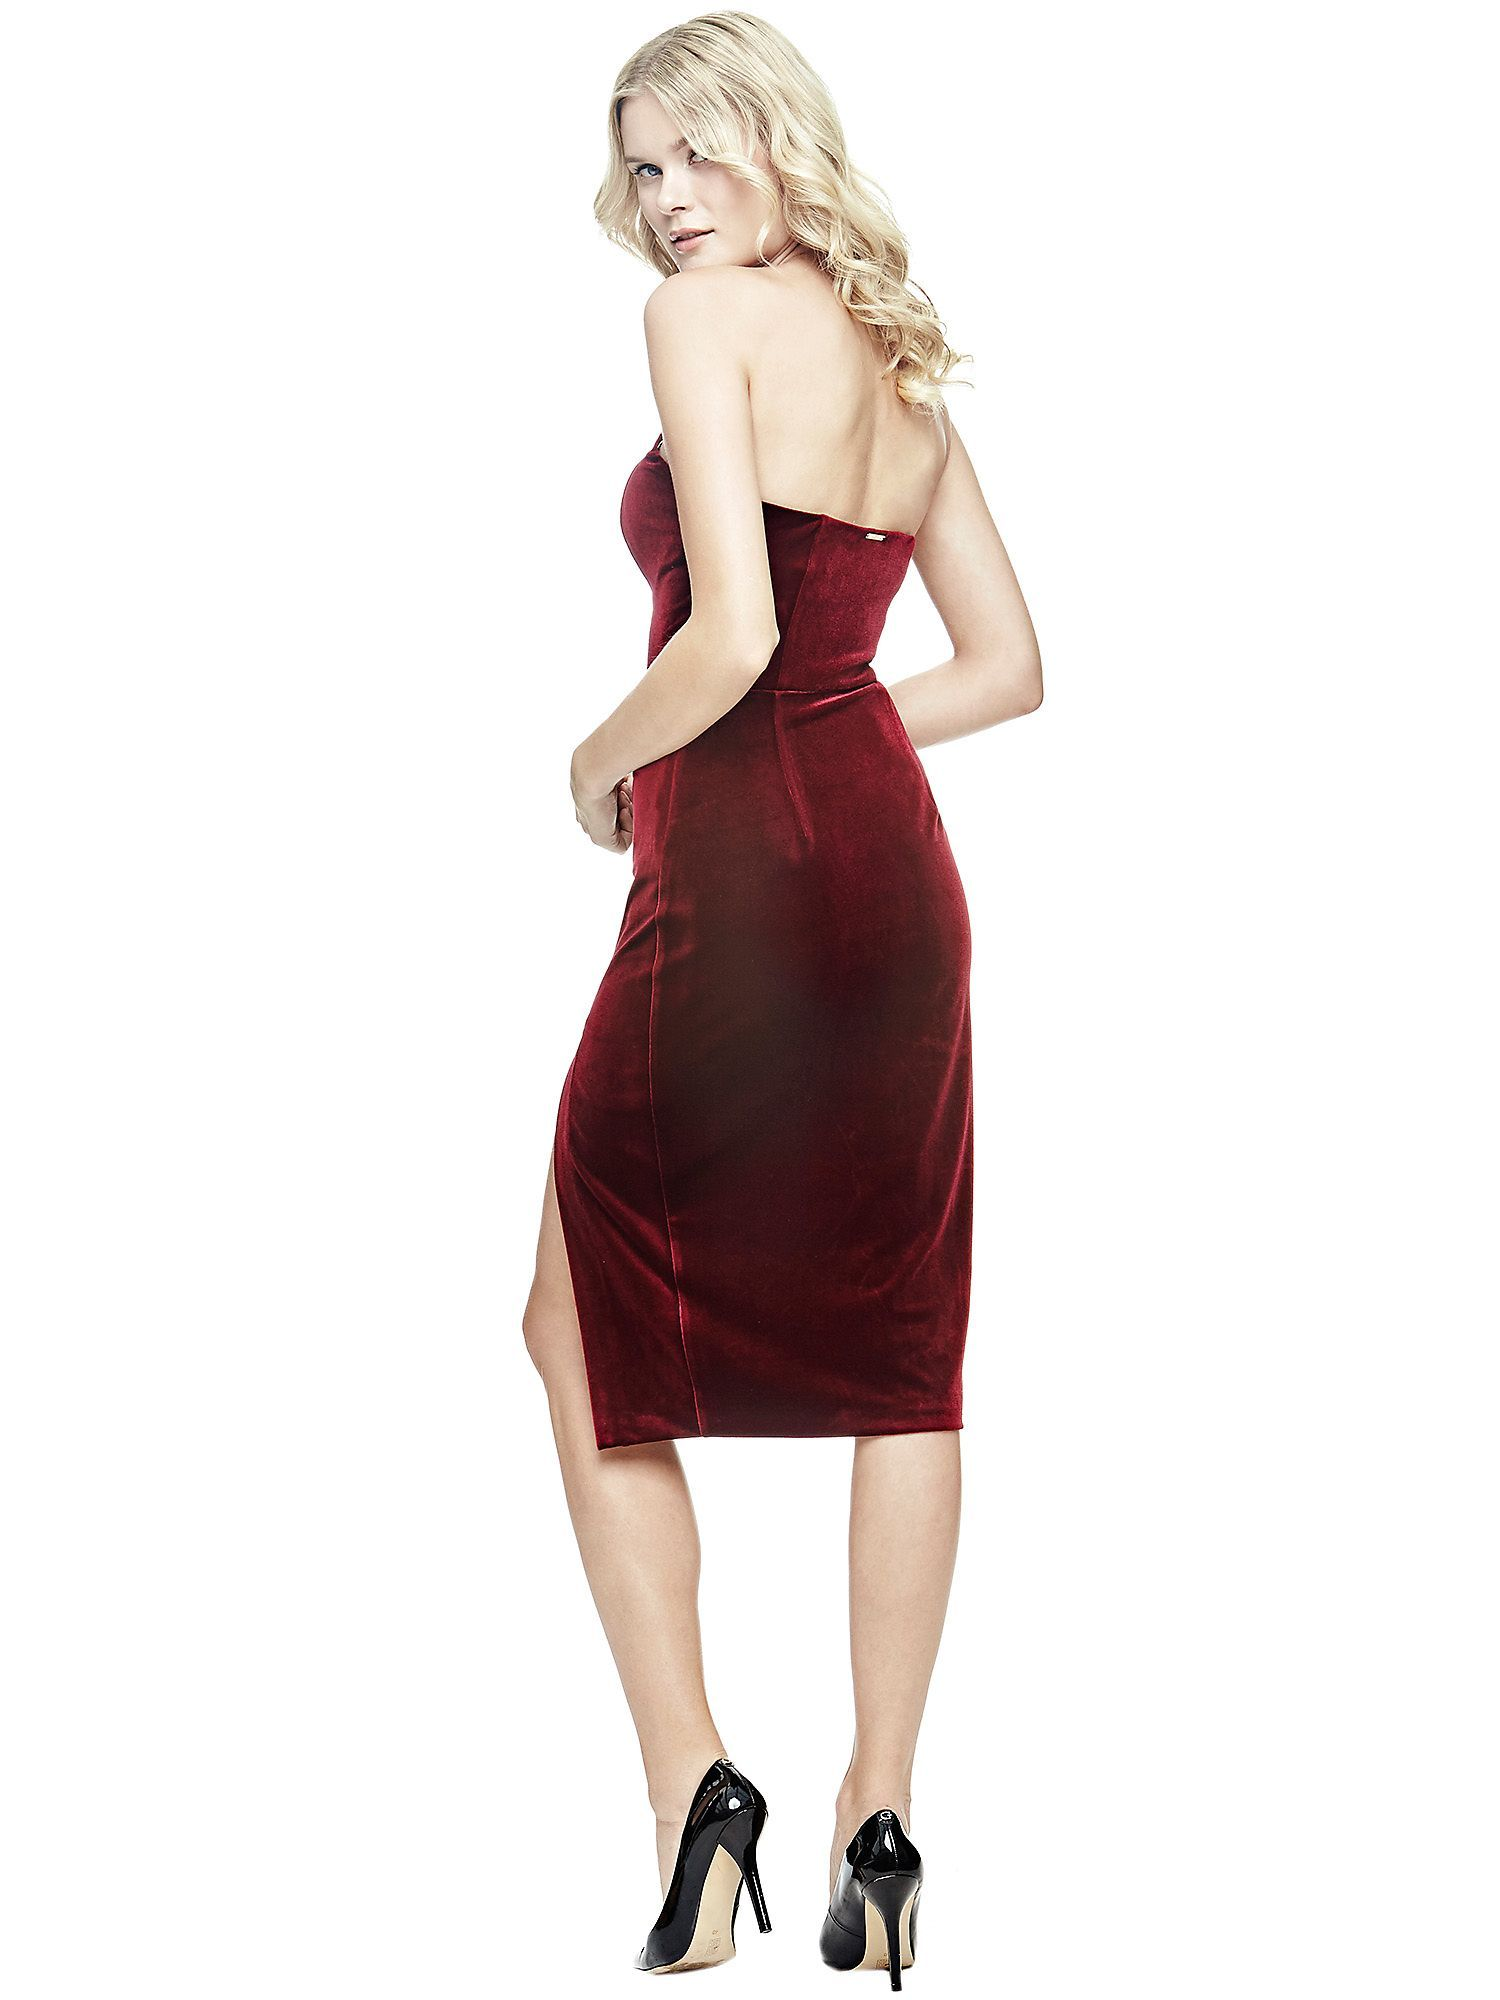 The perfect way to show off a shapely figure? This slim-fit, velvet-look dress with slender straps, close-fitting bodice and split detail at the front